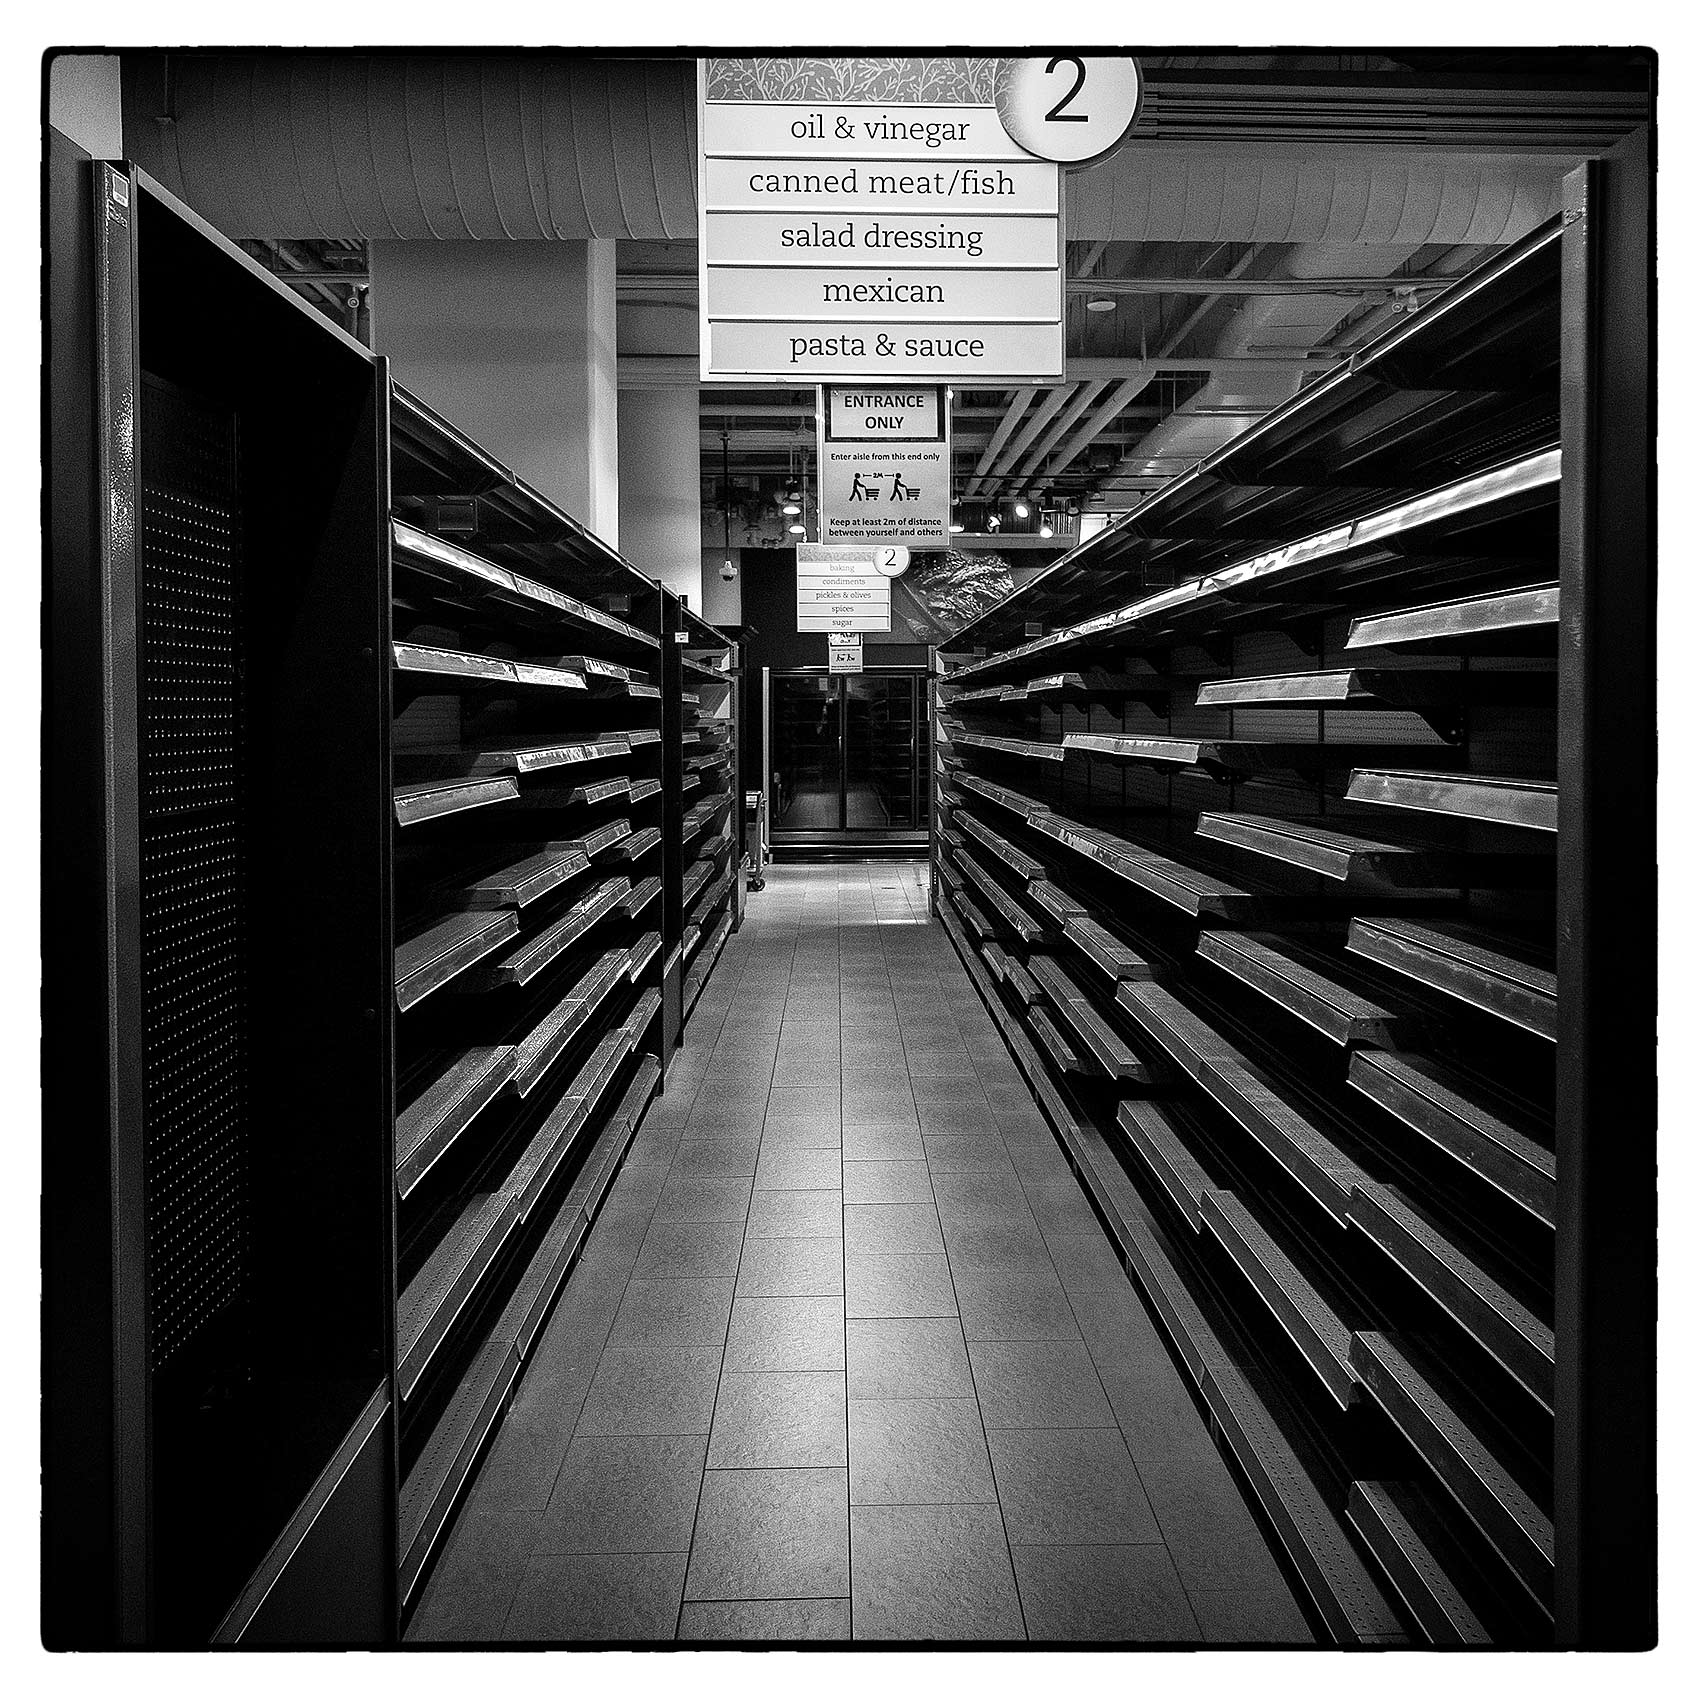 empty-grocery-store-shelves-during-the-pandemic